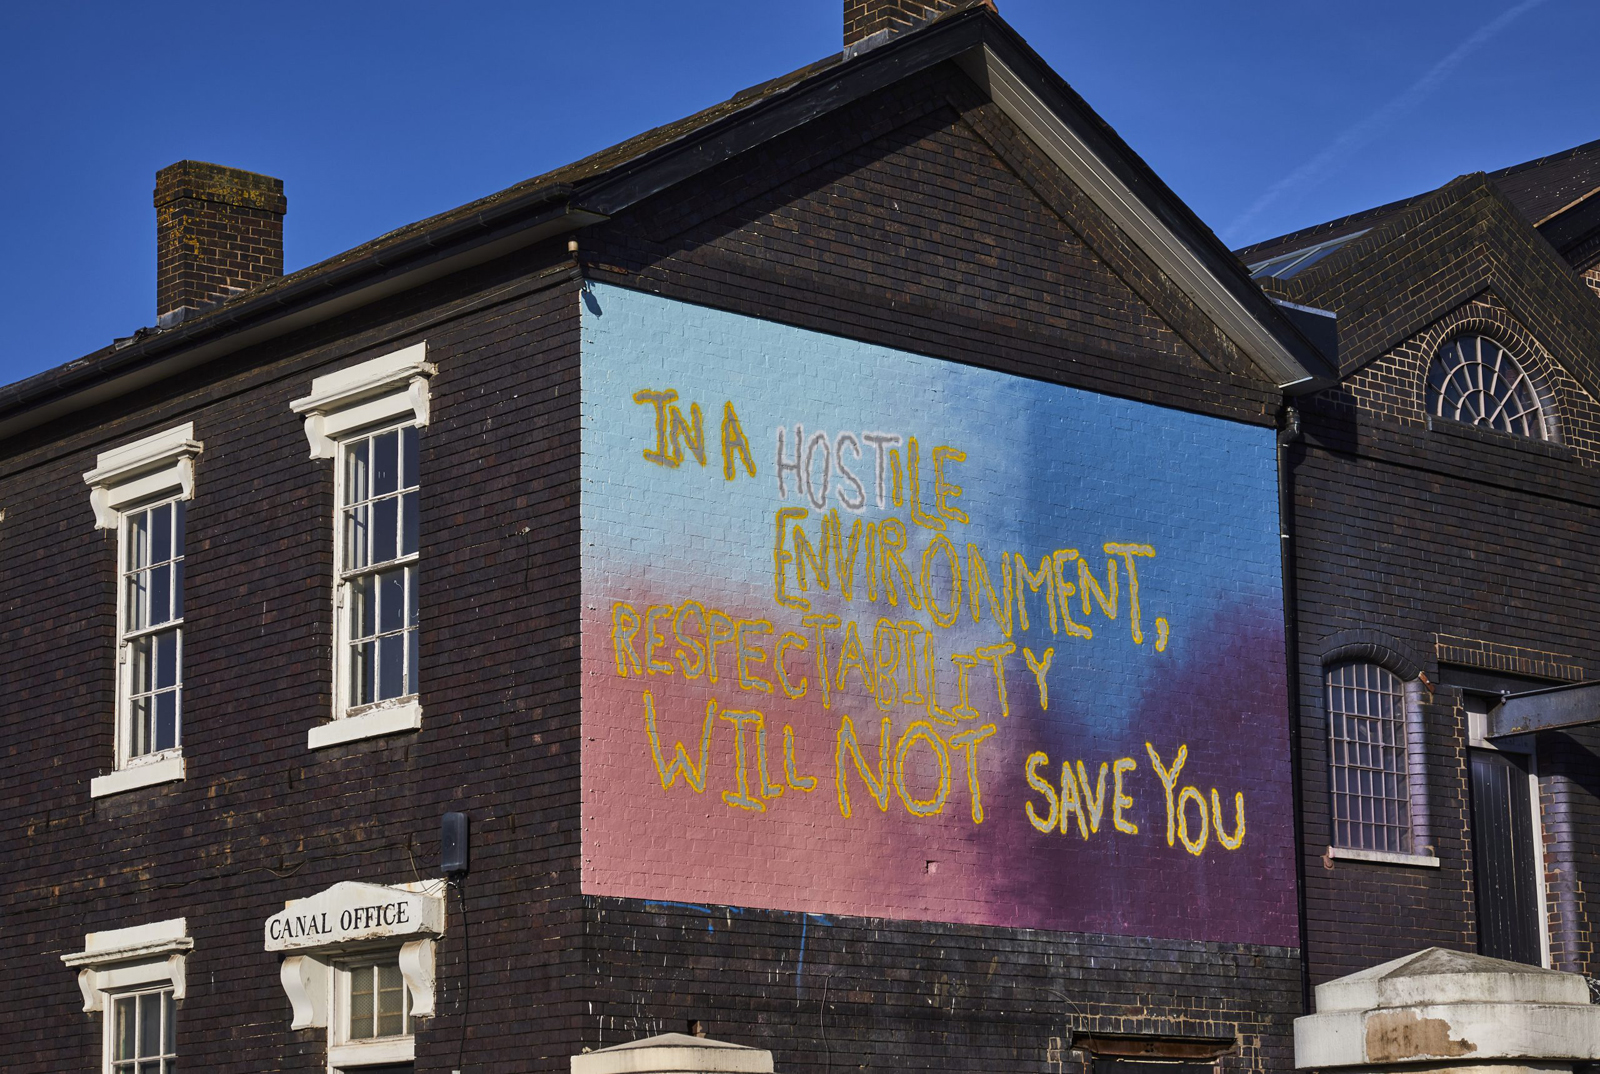 A sign painted on the side of Junction Works building. In yellow and white it reads, In a hostile environment respectability will not save you.